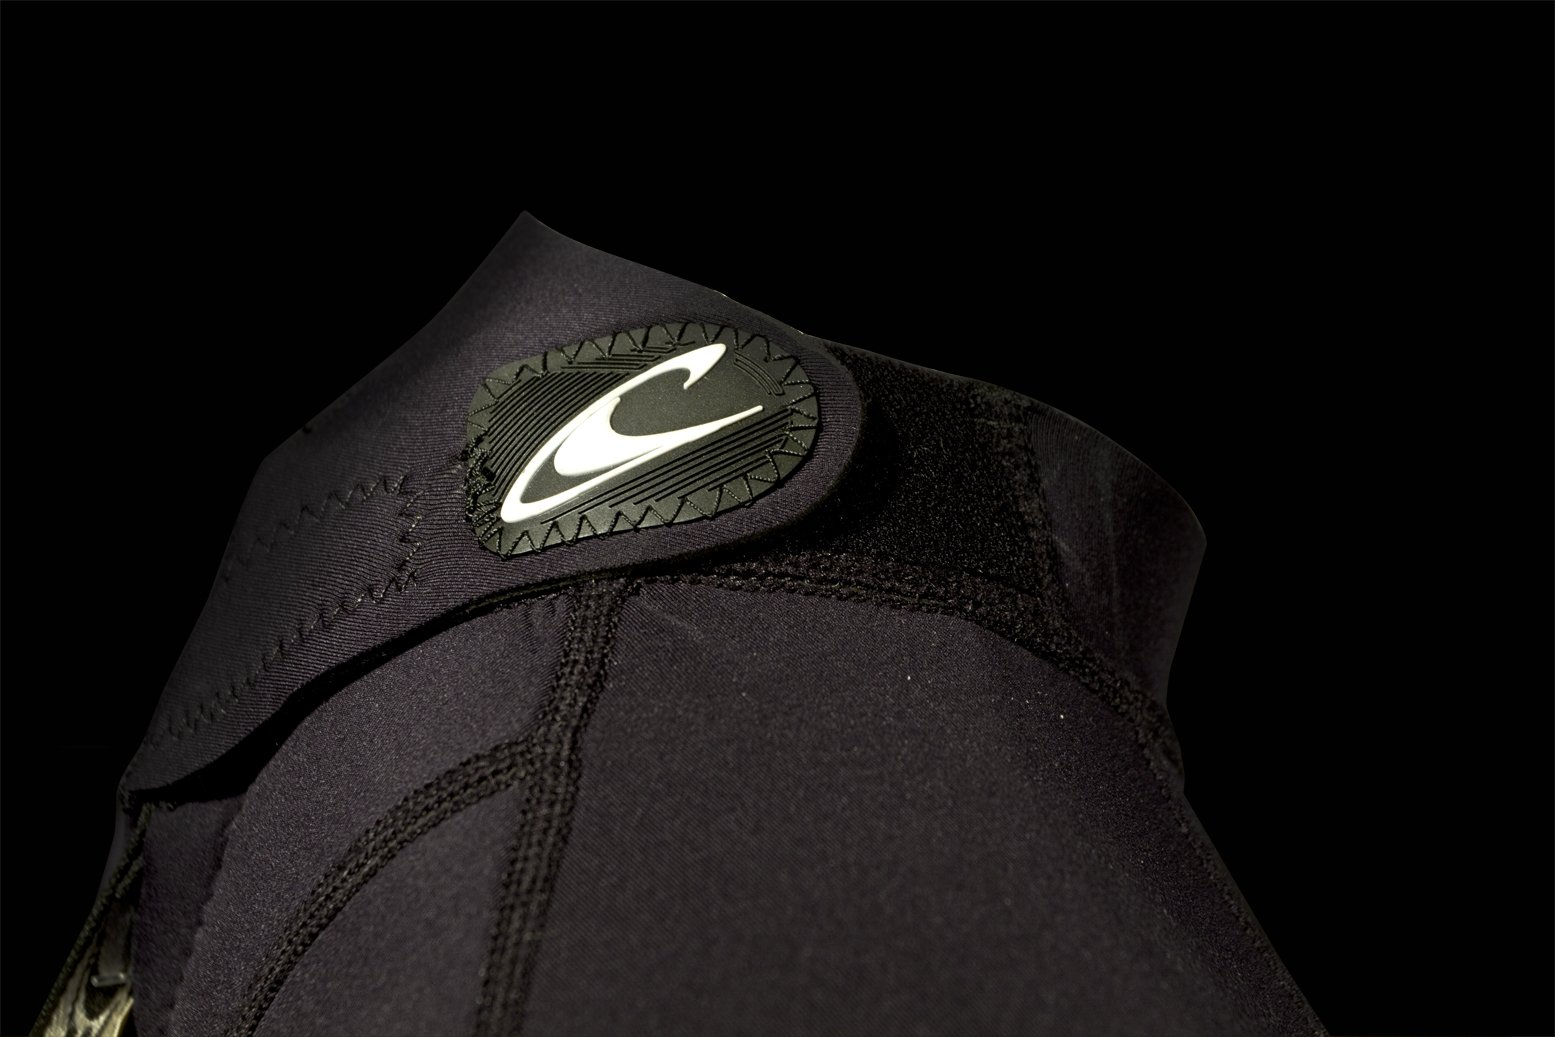 O'Neill Youth Reactor 3/2mm Back Zip Full Wetsuit, Black/Pink/Graphite, 8 by O'Neill Wetsuits (Image #5)